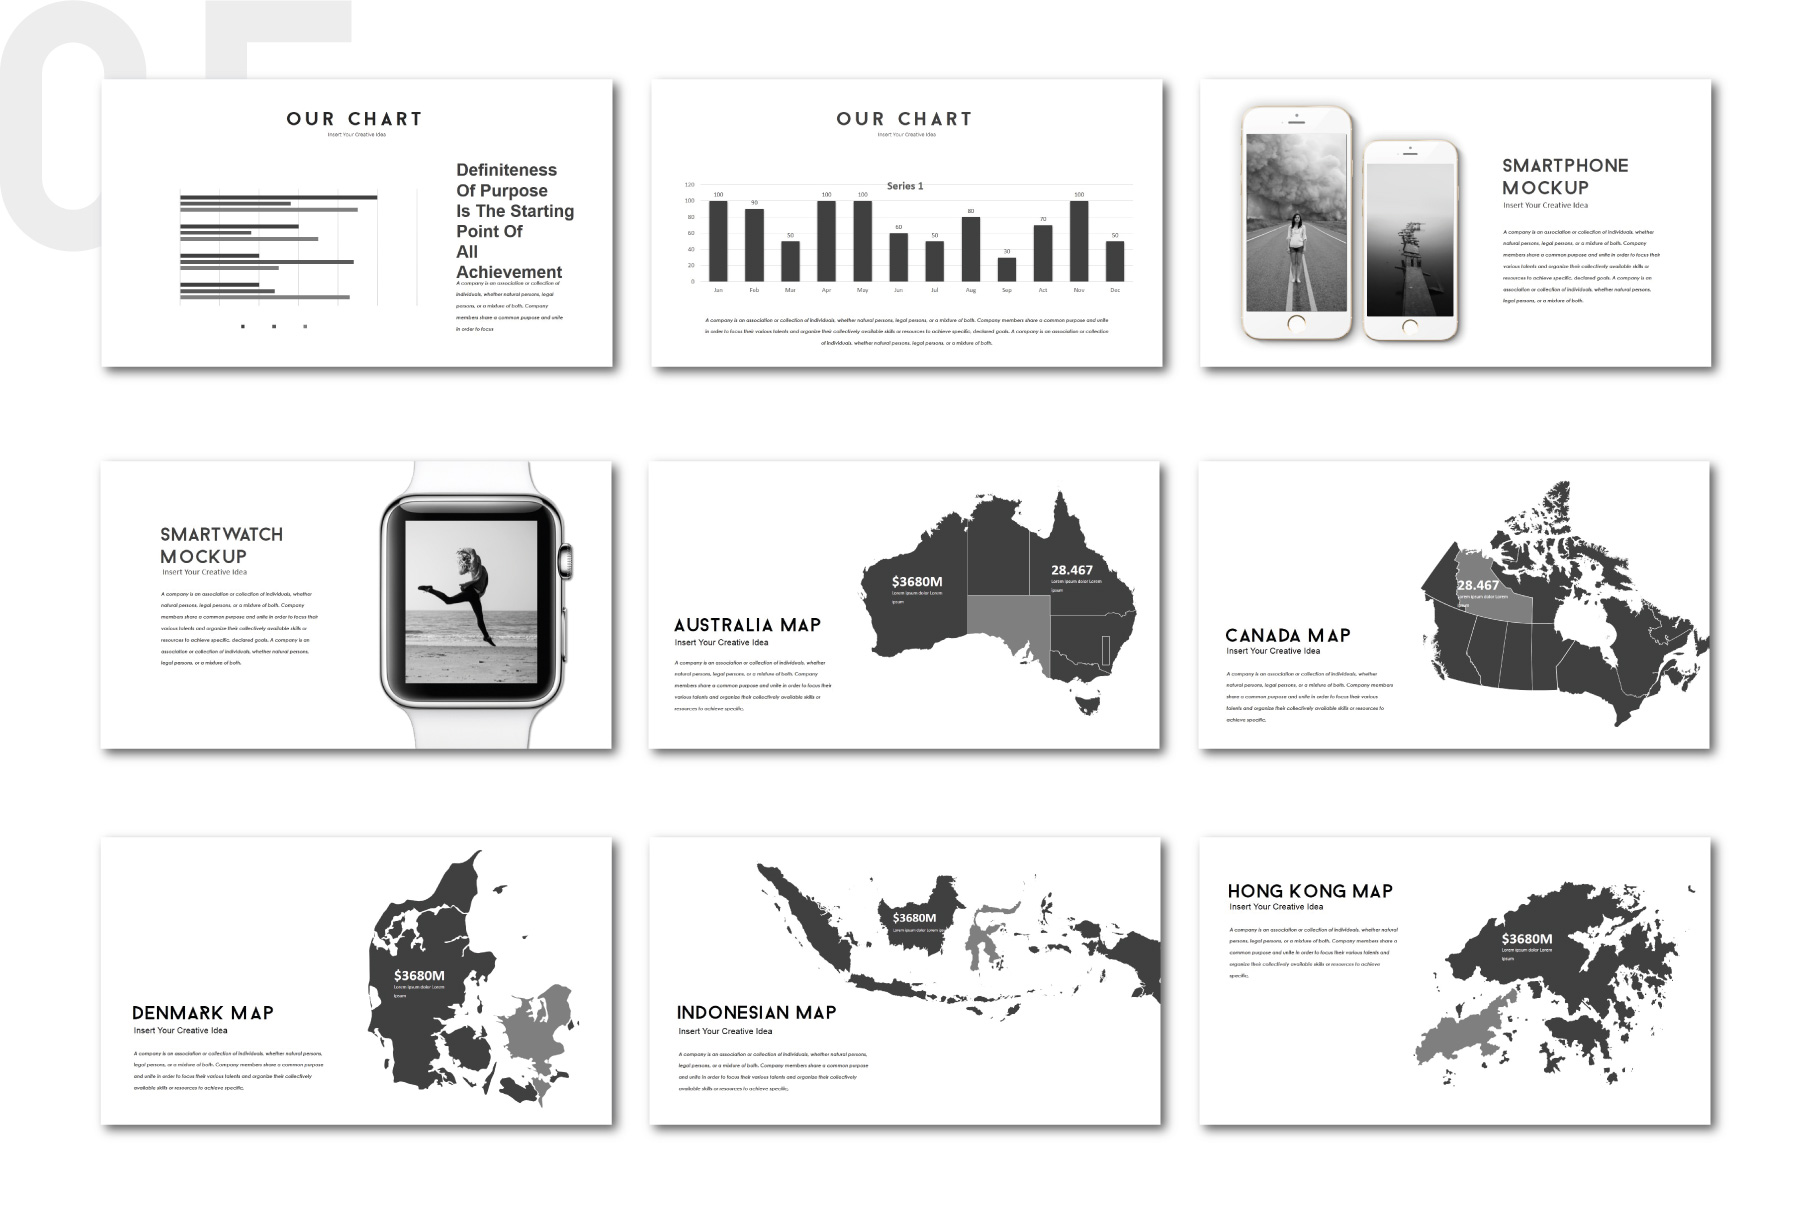 Darkness Multipurpose PowerPoint Templates example image 5